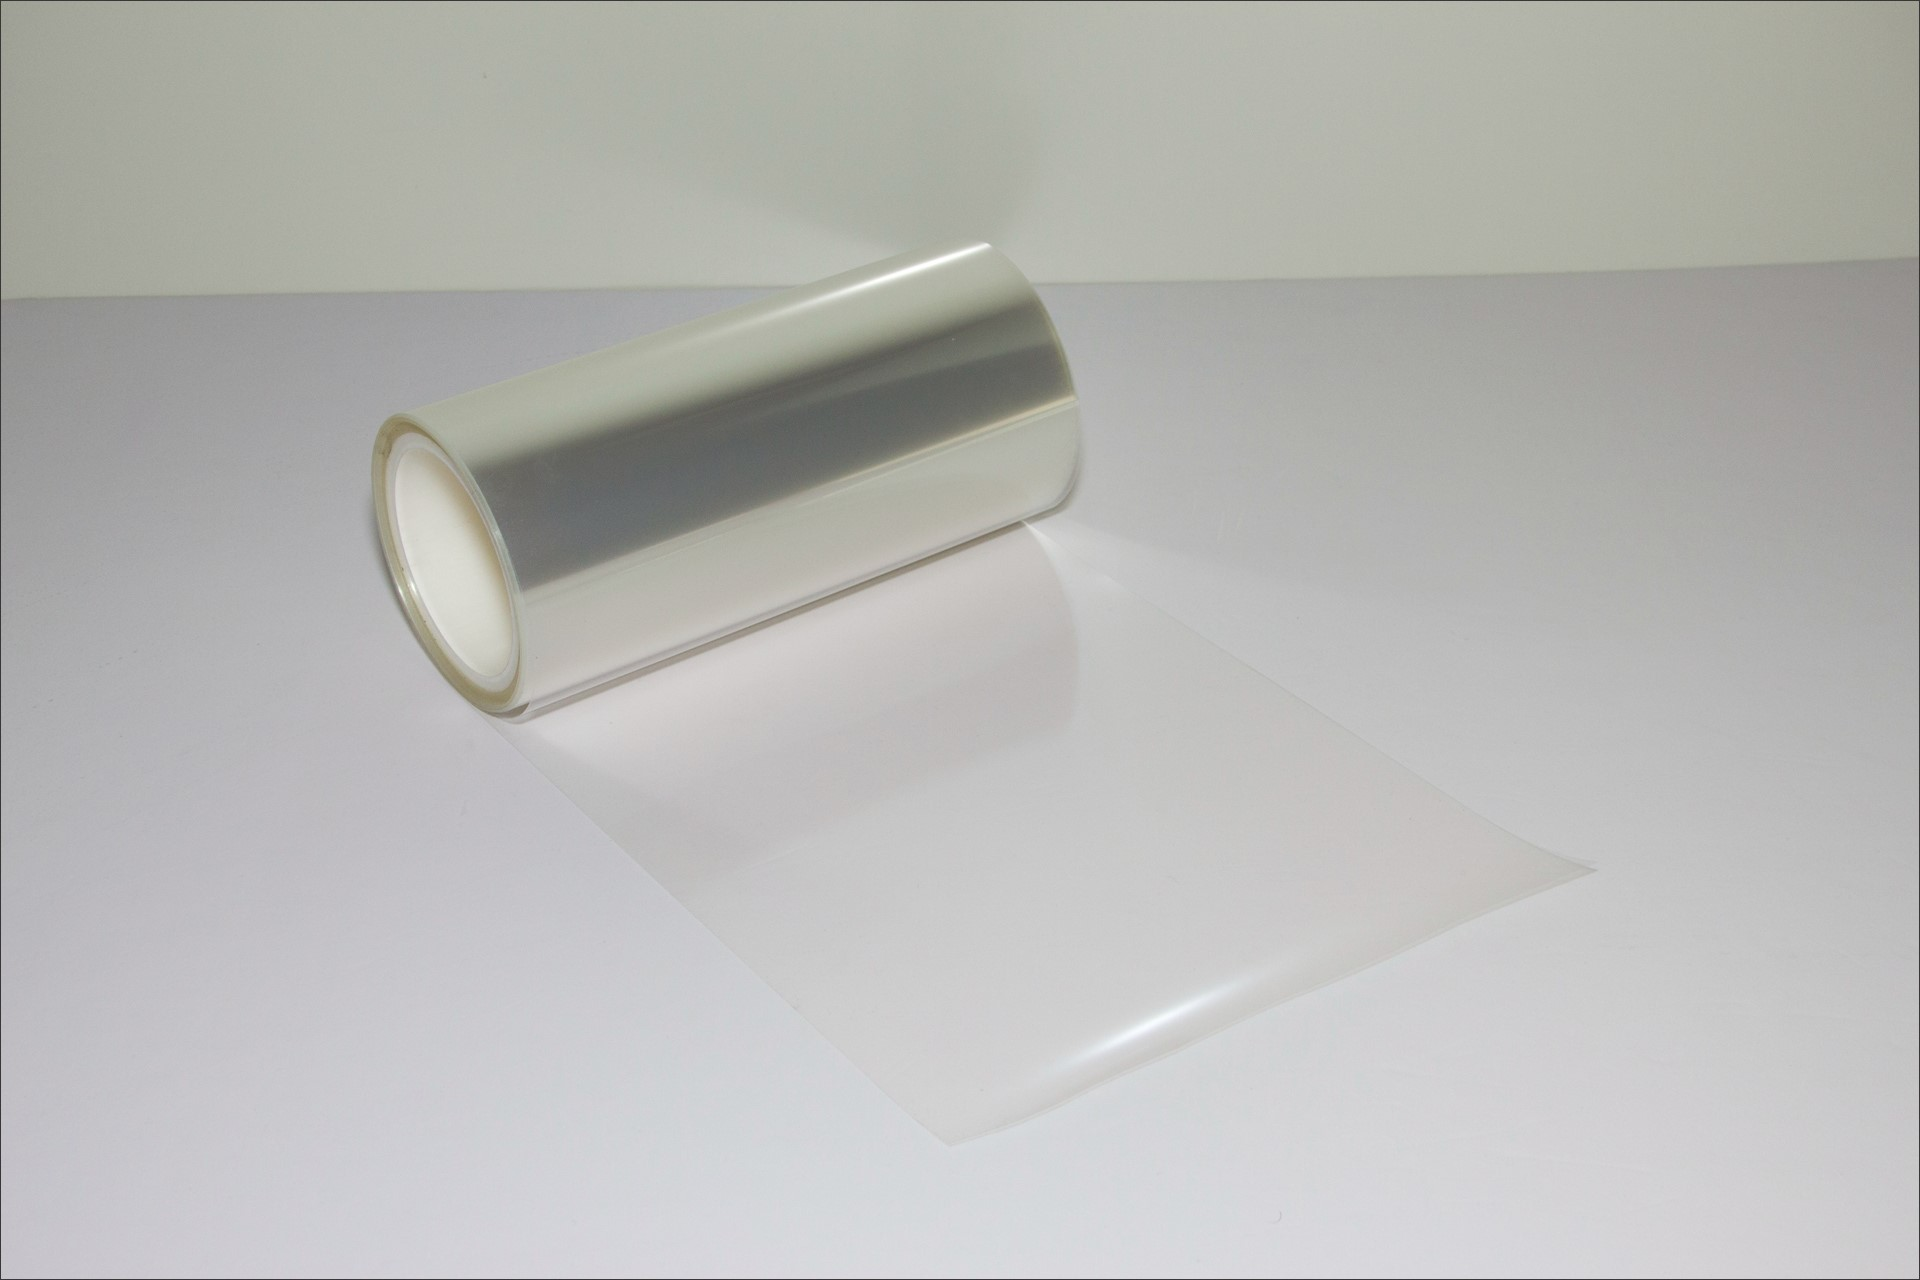 Display screen glass protection PET material protective membrane Manufacturers, Display screen glass protection PET material protective membrane Factory, Supply Display screen glass protection PET material protective membrane